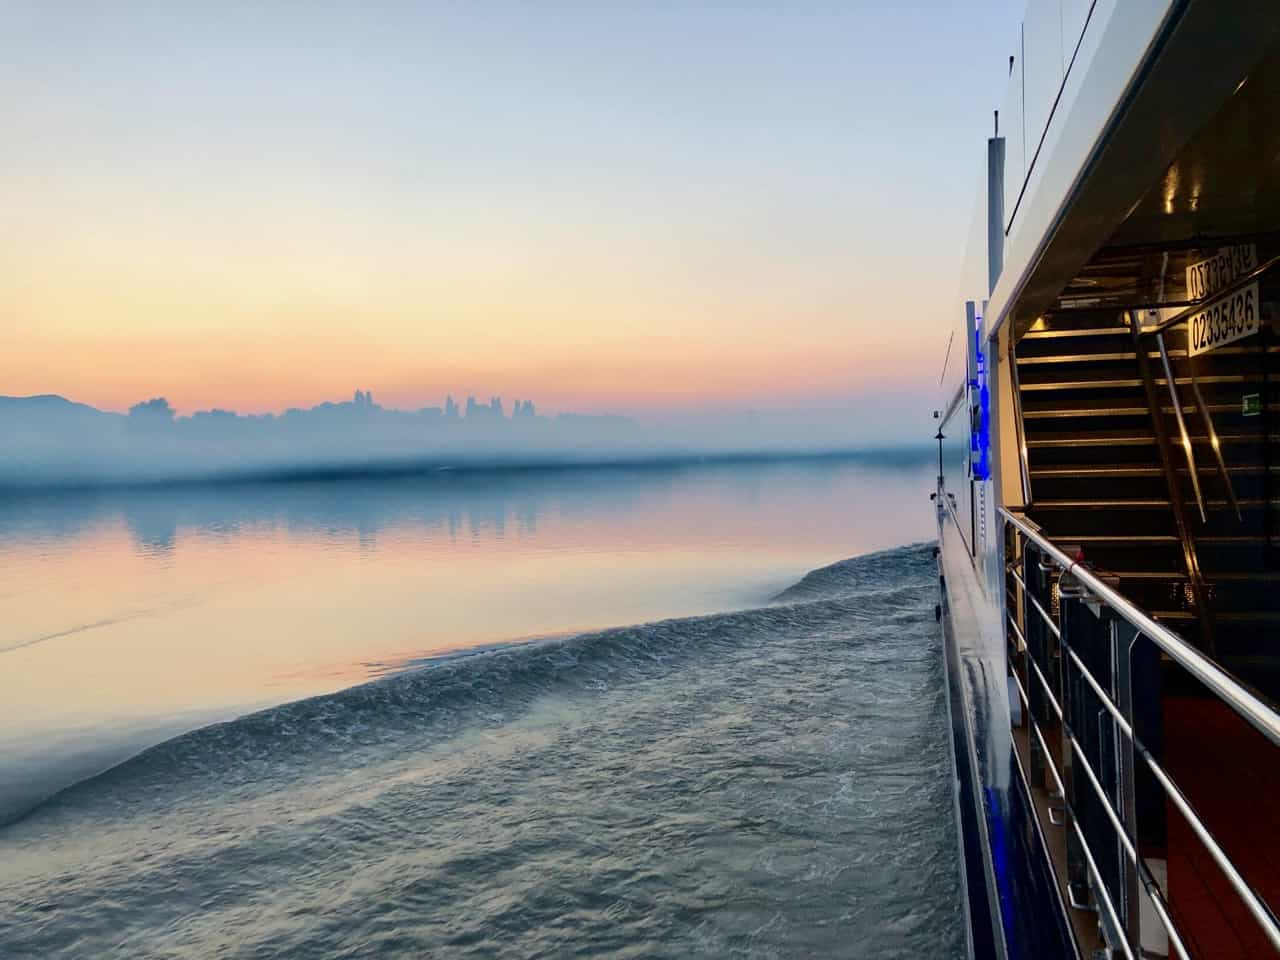 Cruising the Danube River with Avalon Waterways